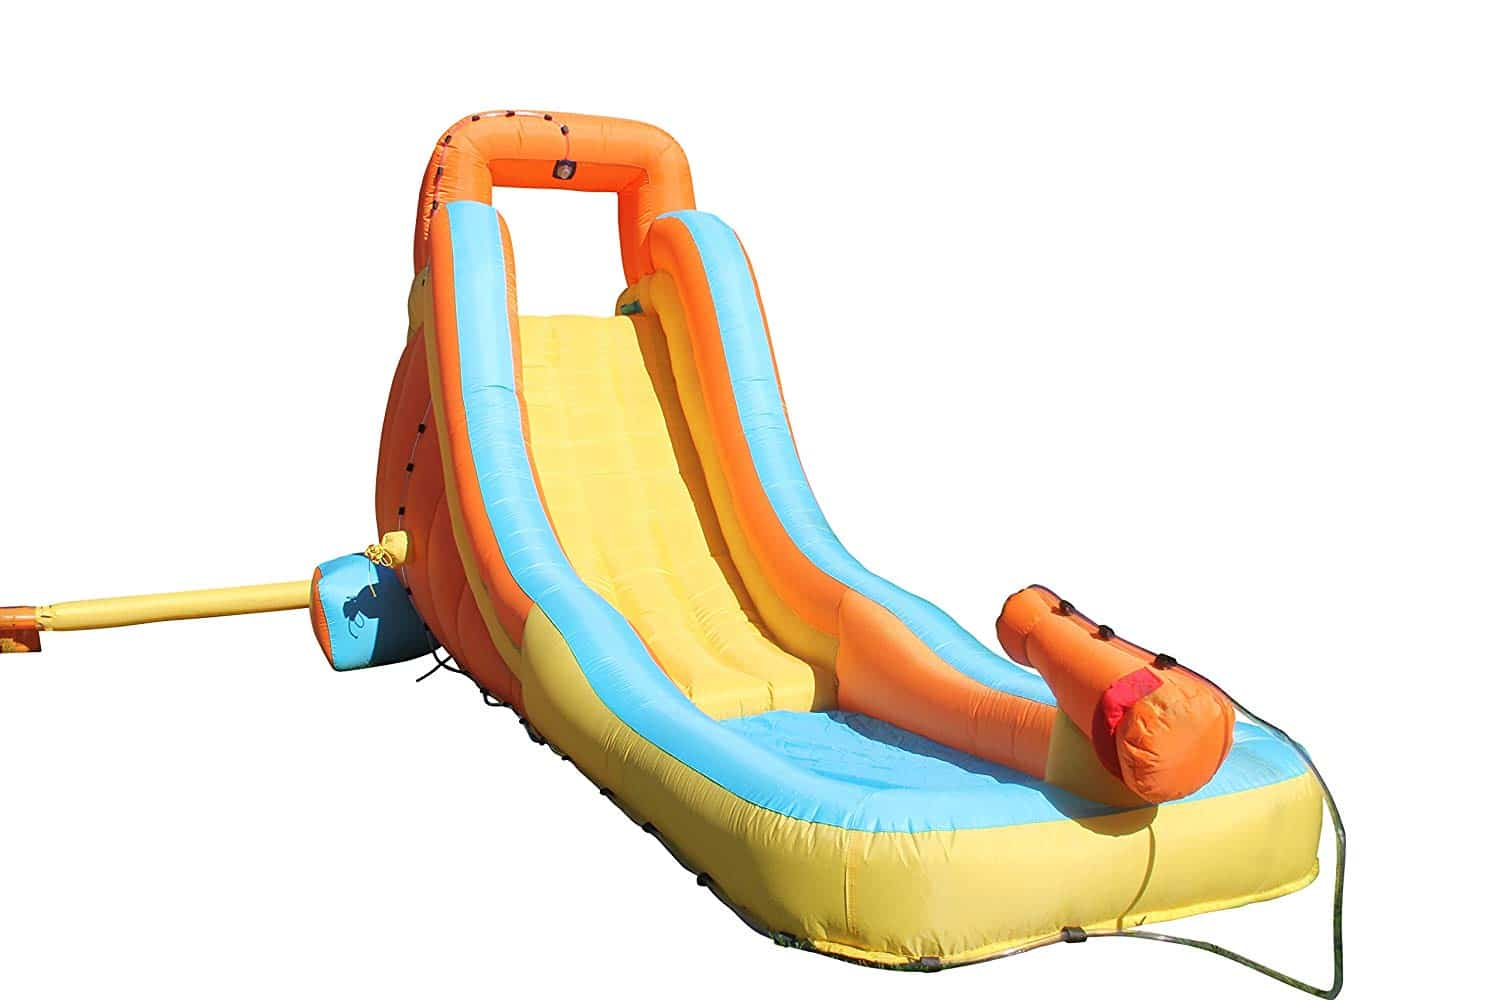 Sportspower Inflatable Water Slide